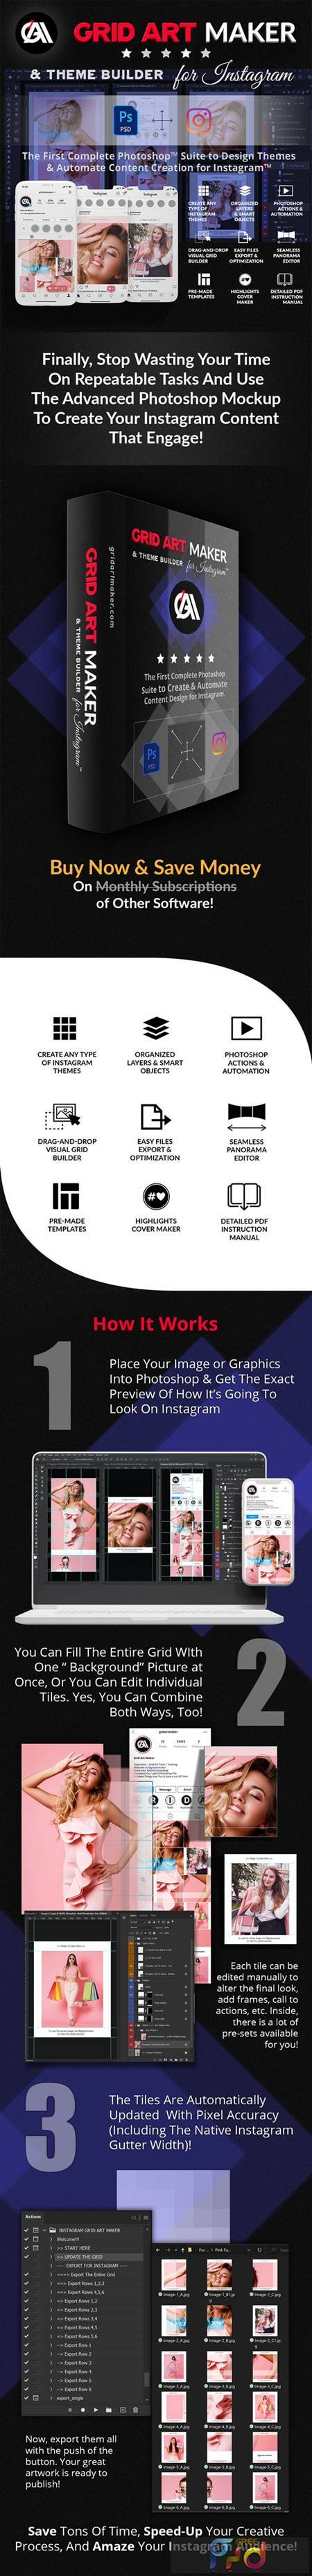 Instagram Grid Art Maker - All-In-One Photoshop Suite 30243603 1